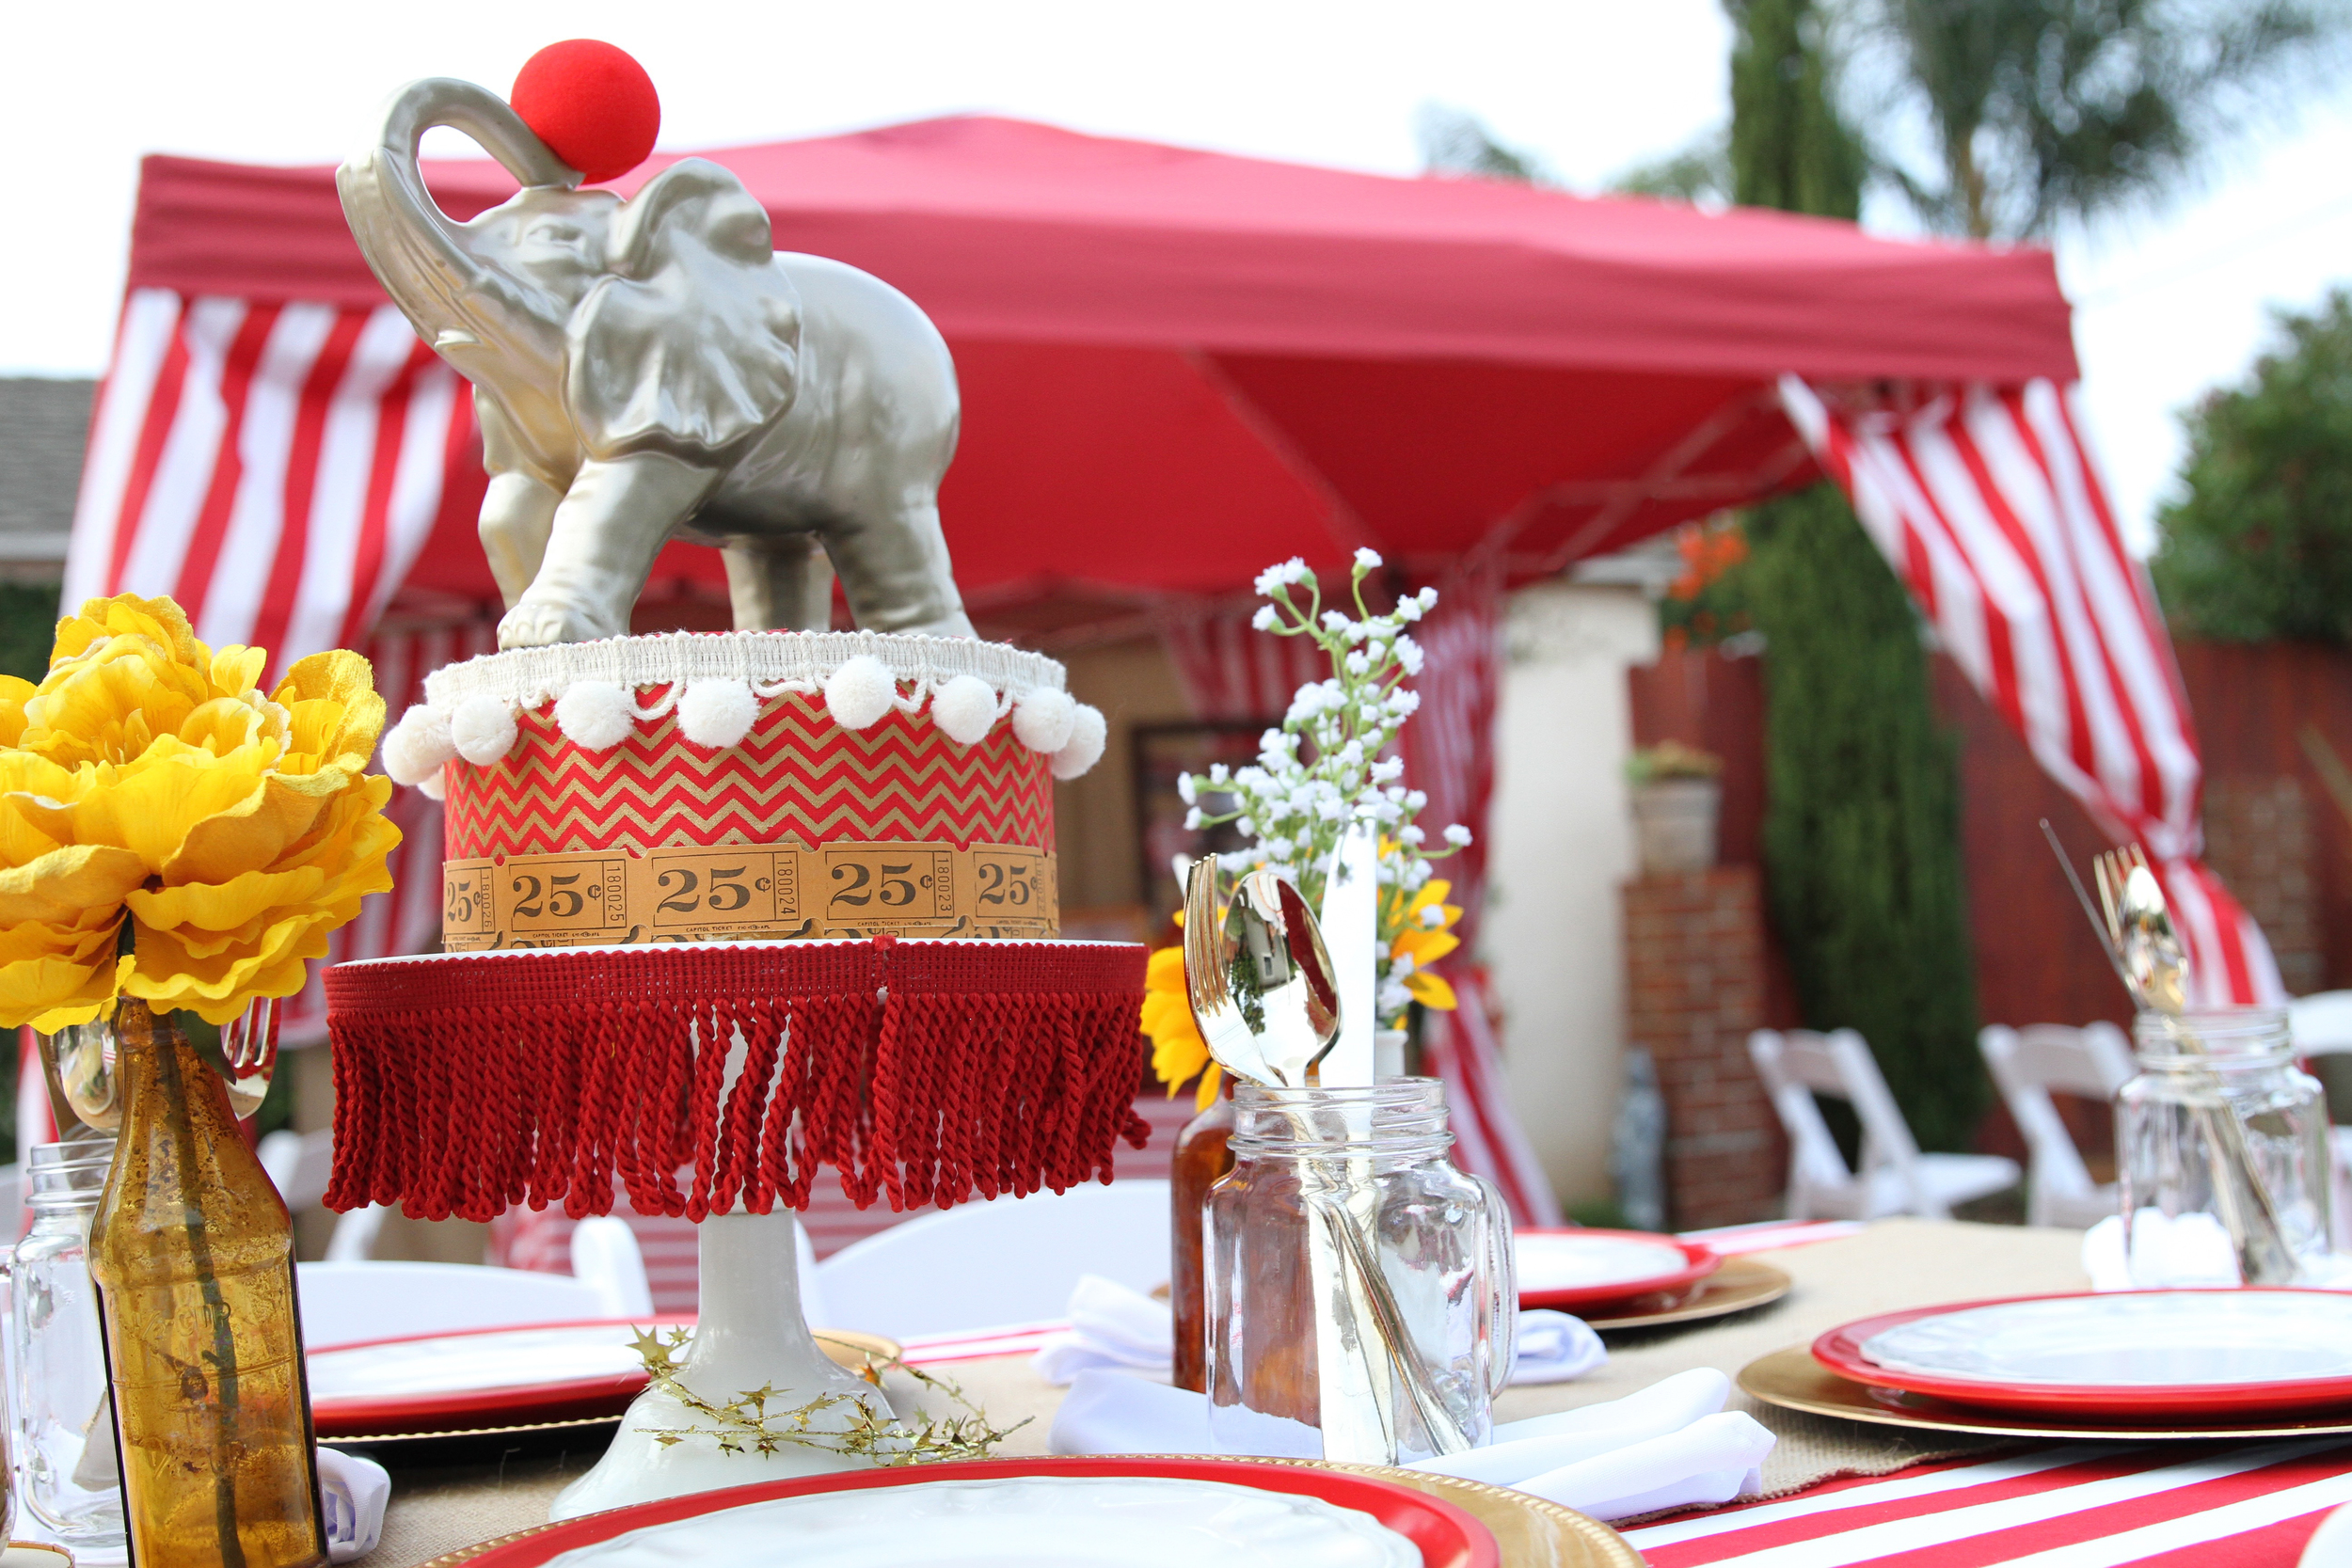 The best party on Earth! A perfectly executed circus themed party - Prepackaged and ready to rent from inJOY The Party! @inJOYtheParty